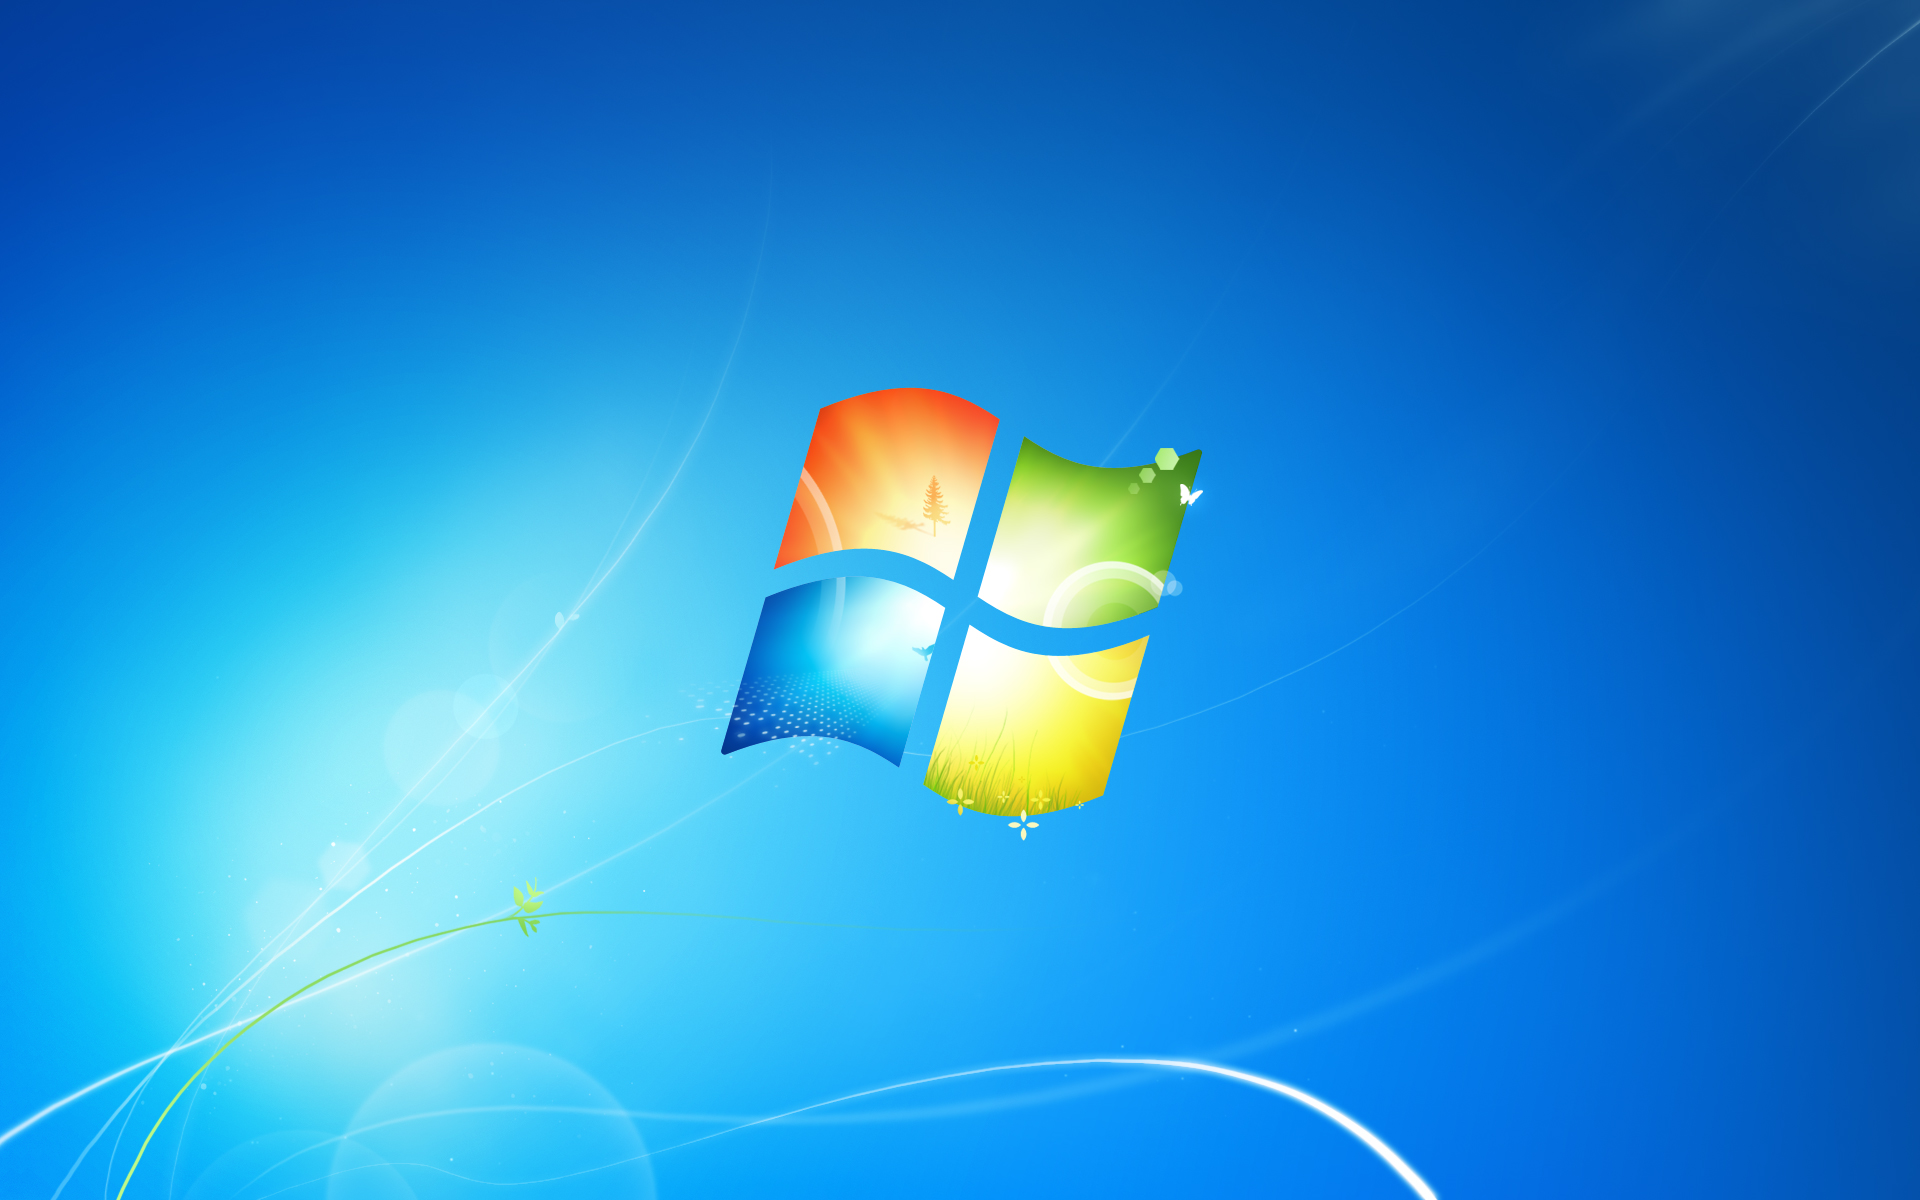 and not only I have posted this classic Windows 7 Classic Wallpaper 1920x1200